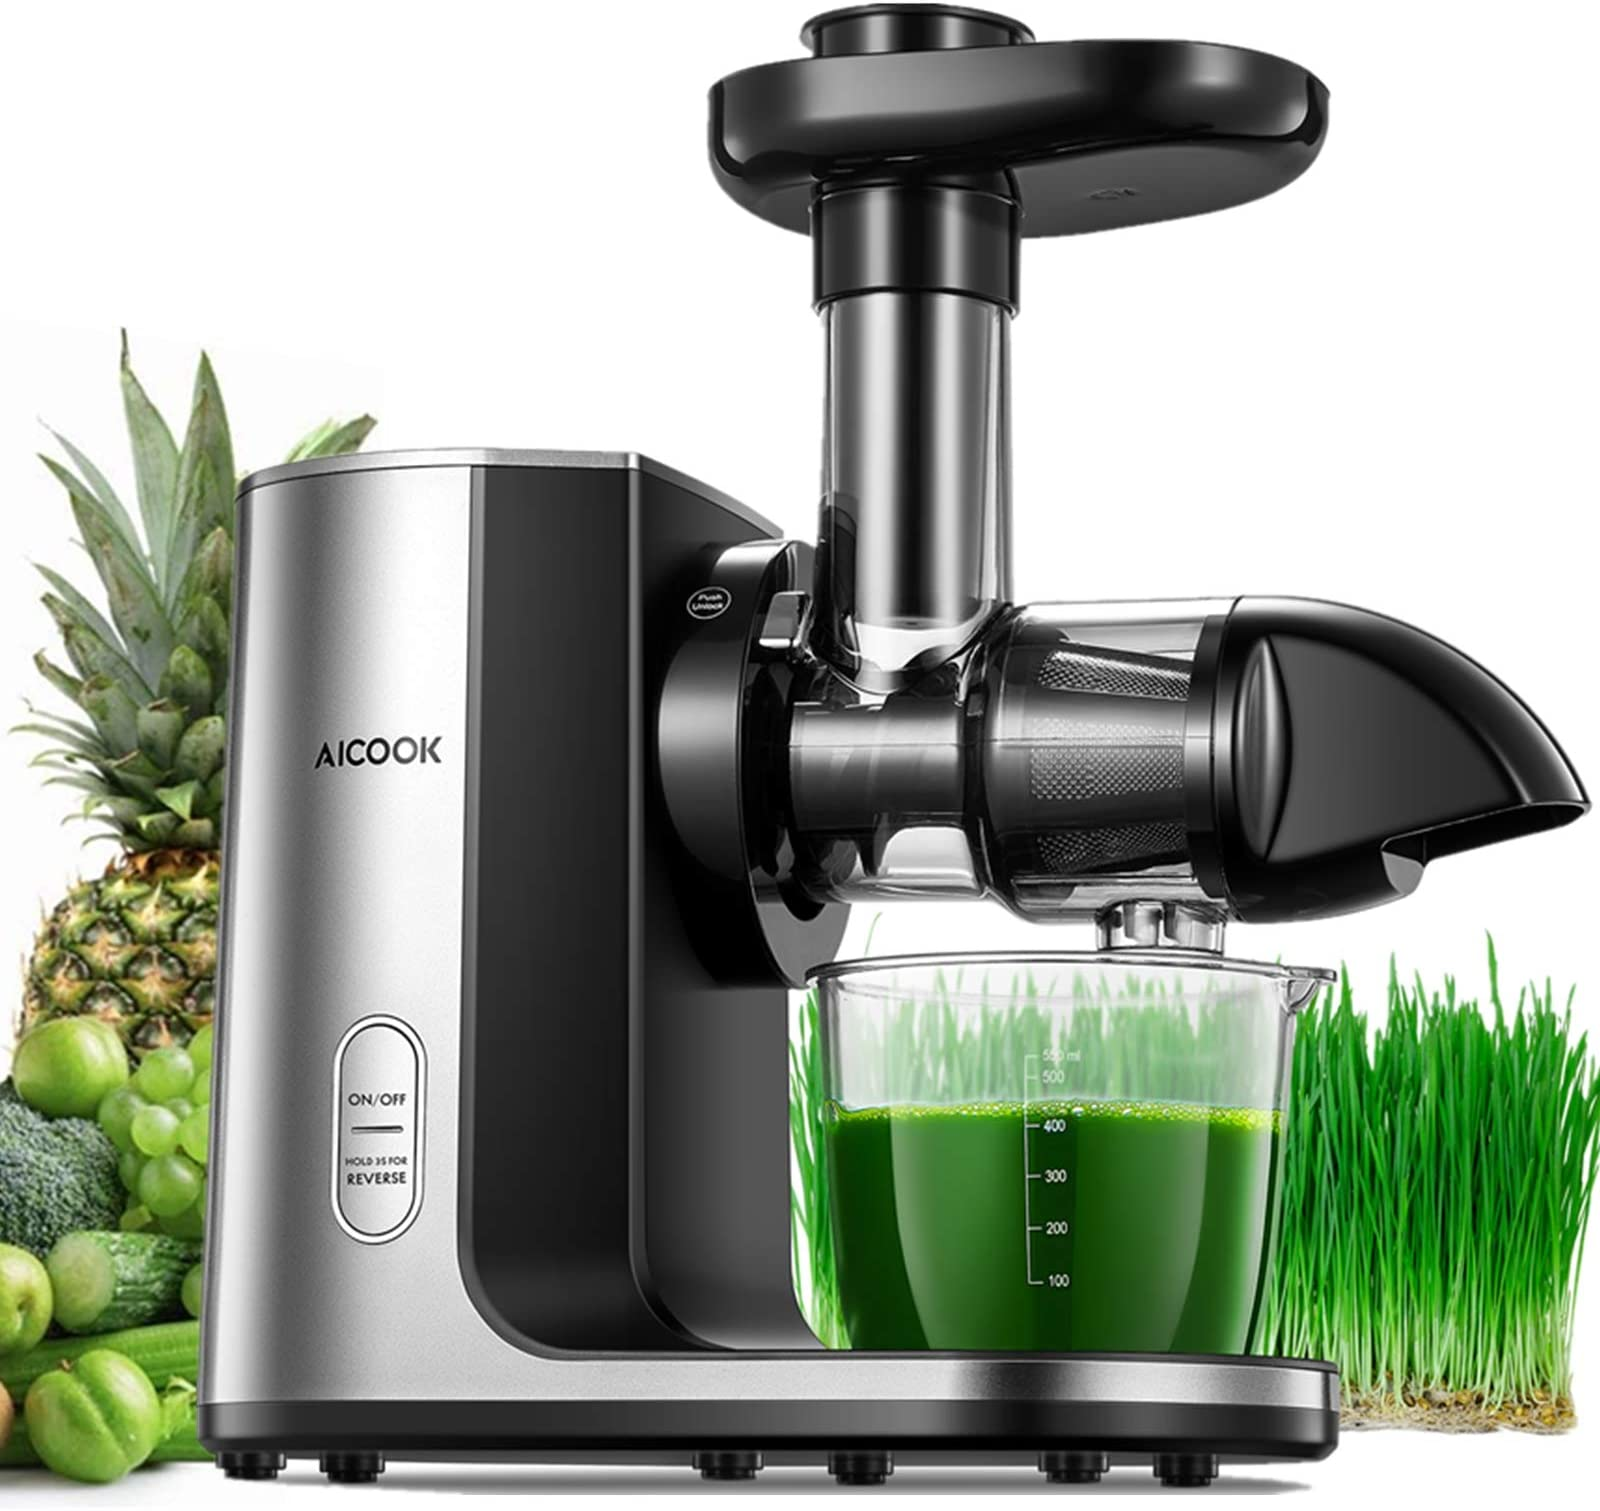 Juicer Machines, Aicook Cold Press Masticating Juicer with Quiet Motor, Easy to Clean with Brush, Higher Juice Yield, Reverse Function & Recipes for Vegetables and Fruits Included